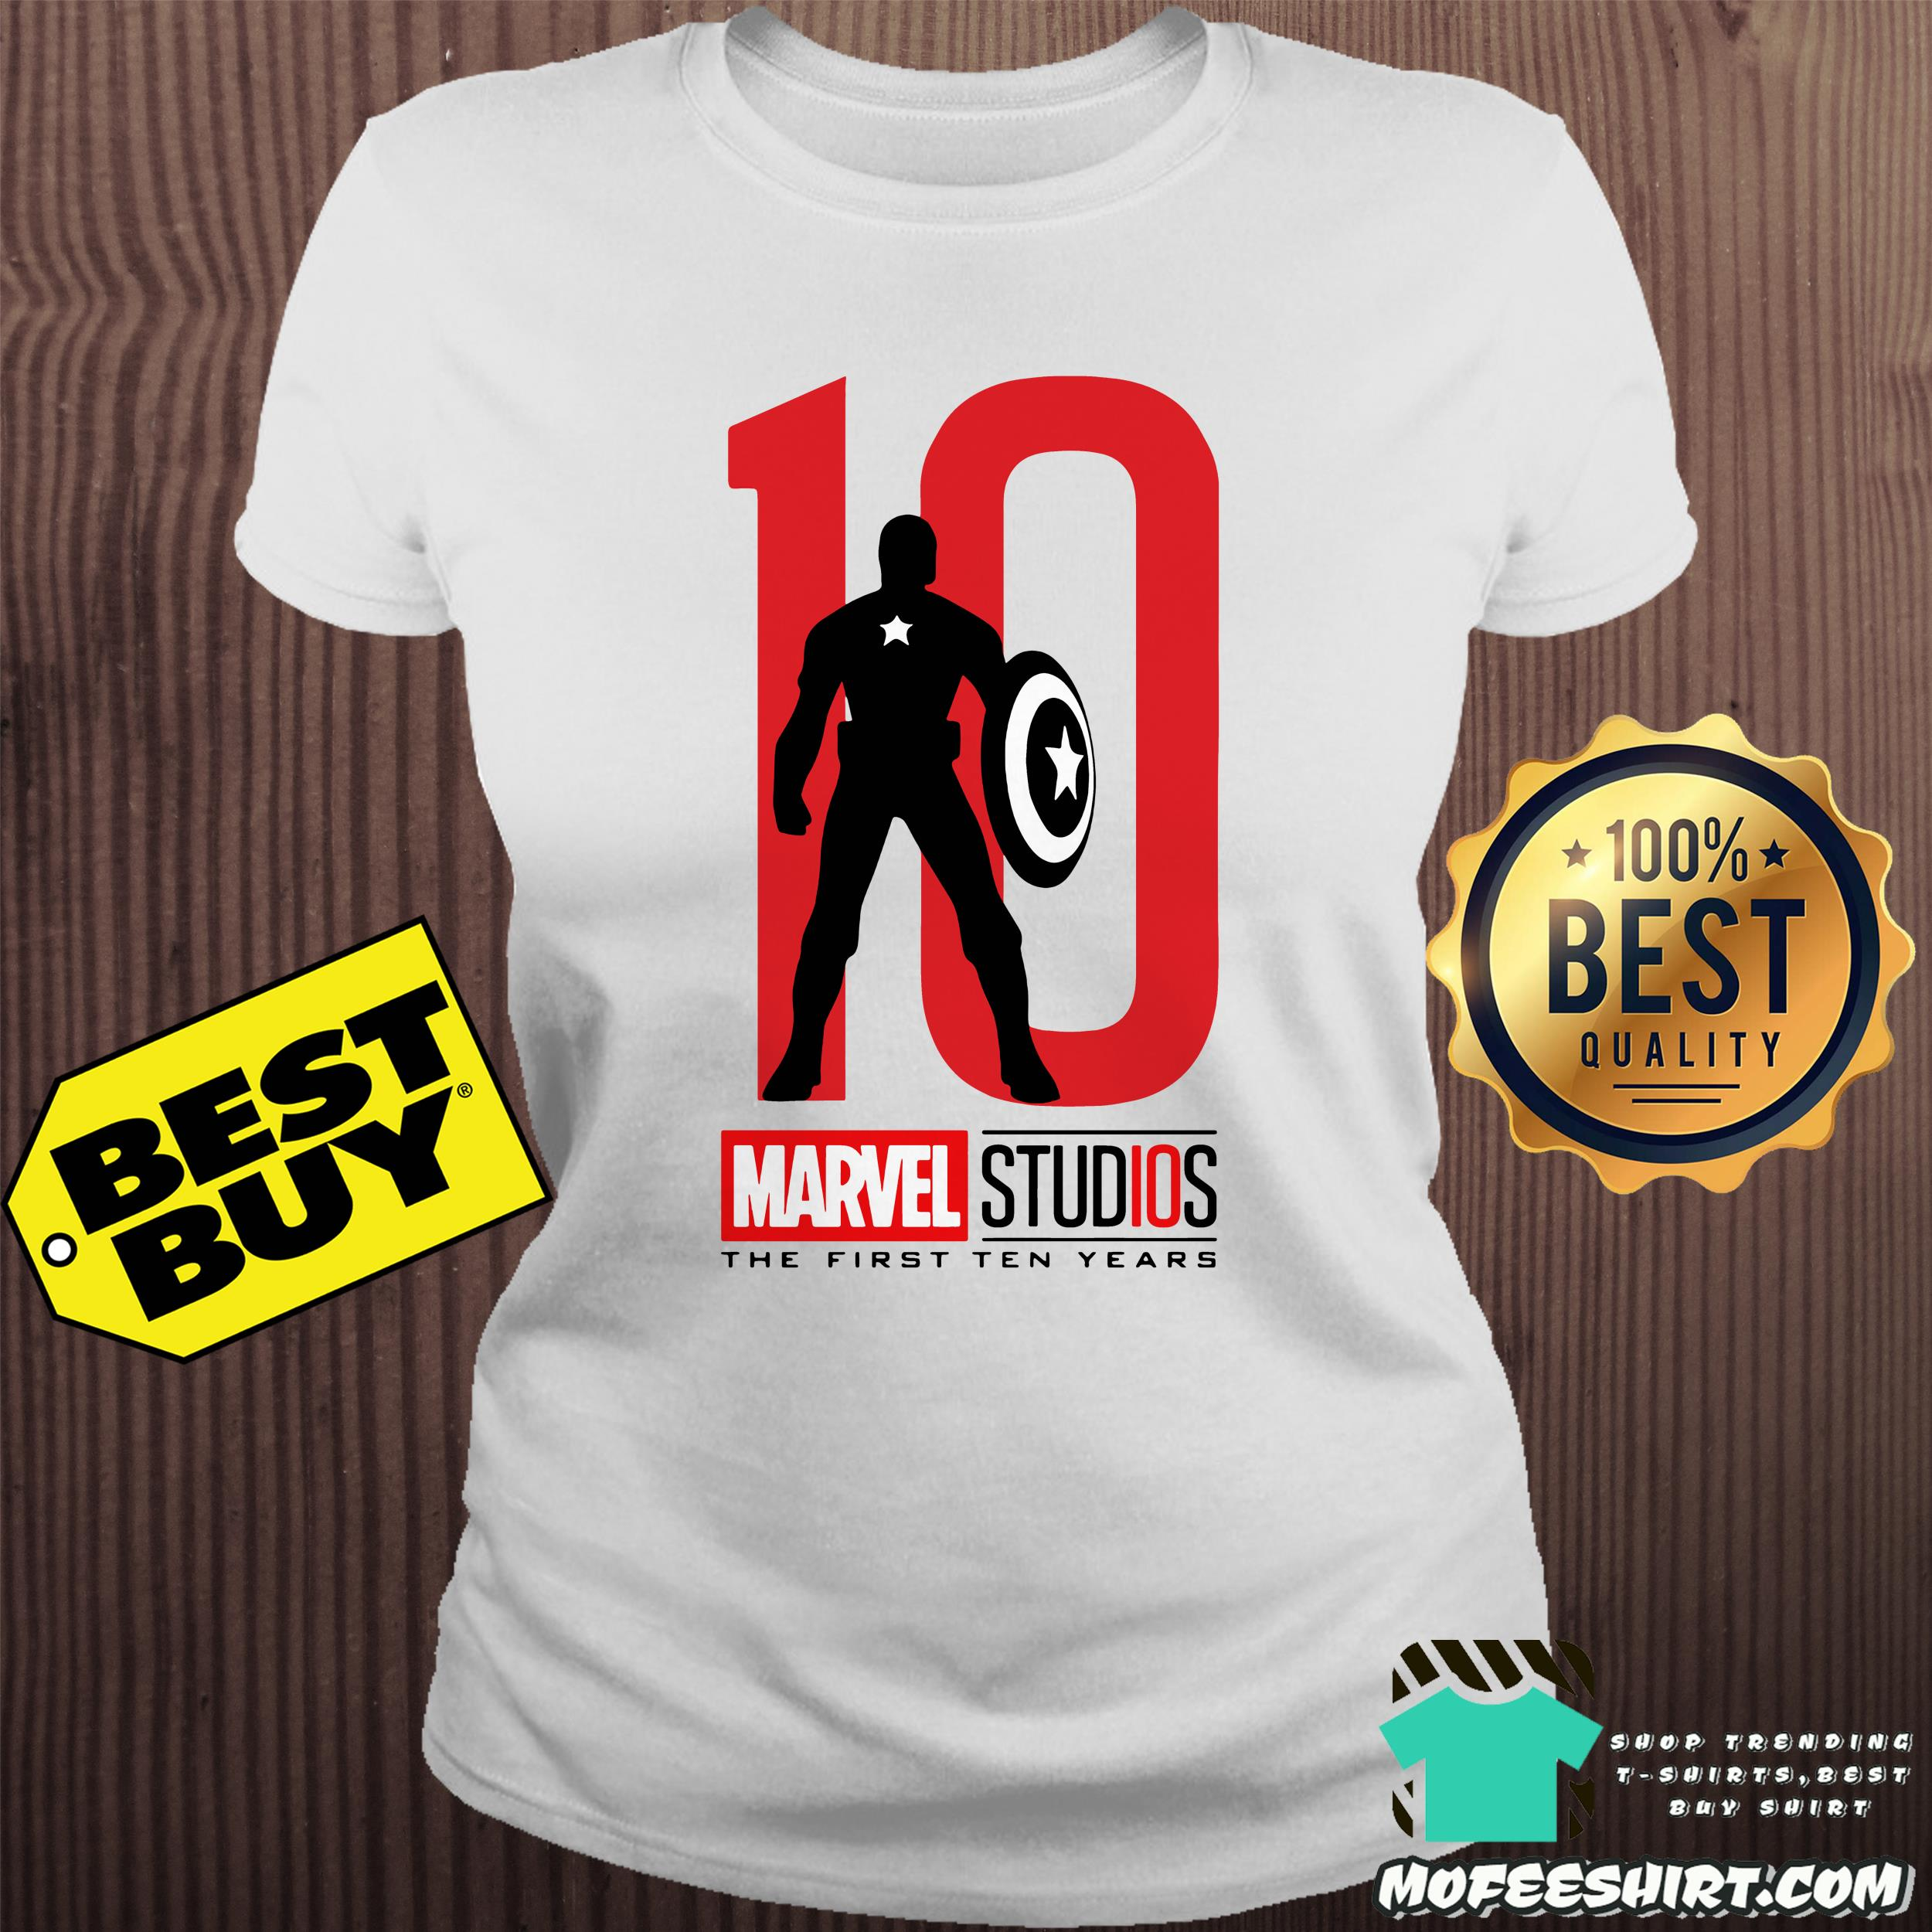 captain america marvel studios the first ten years ladies tee - Captain America Marvel studios the first ten years shirt